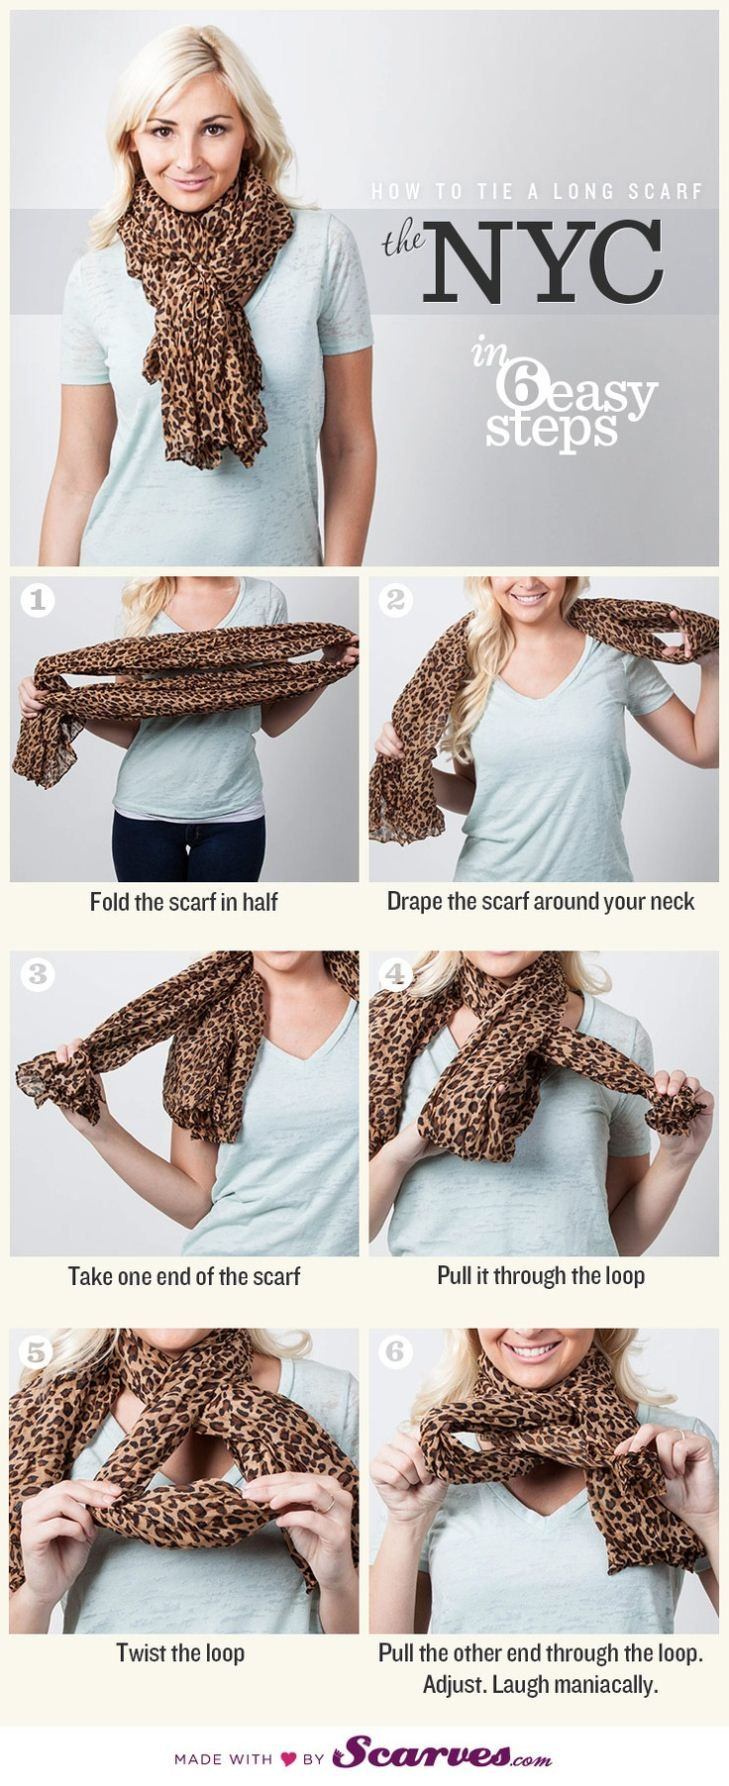 Another way to wear a scarf